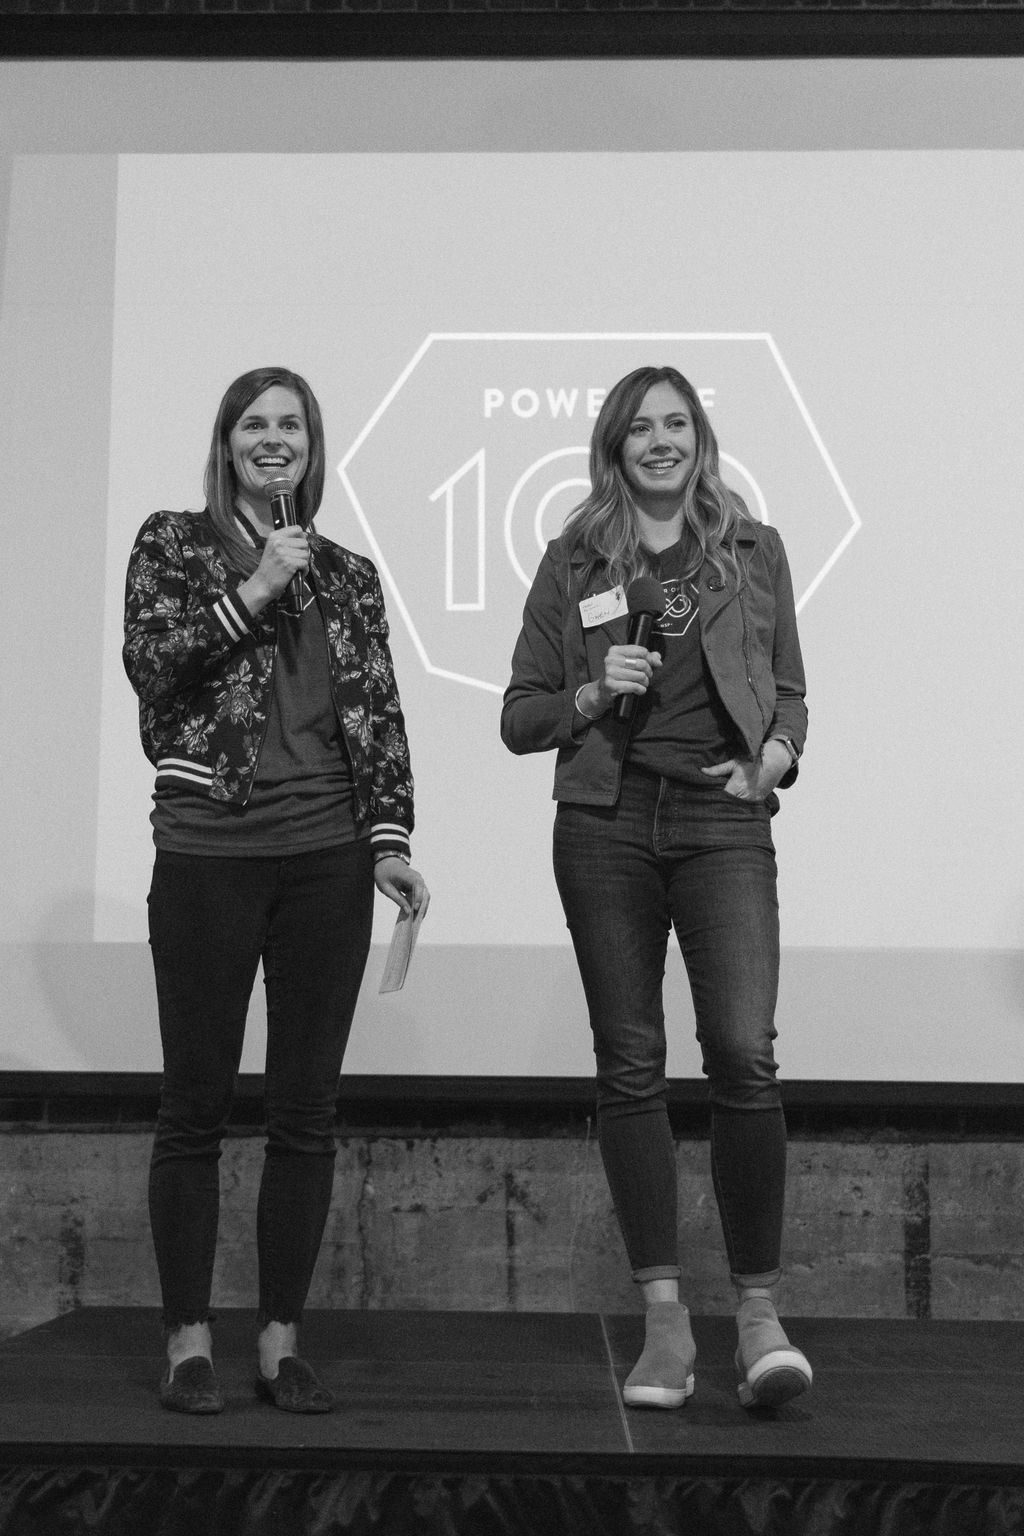 Pitchfest2018-Large(90of139) copy.jpg